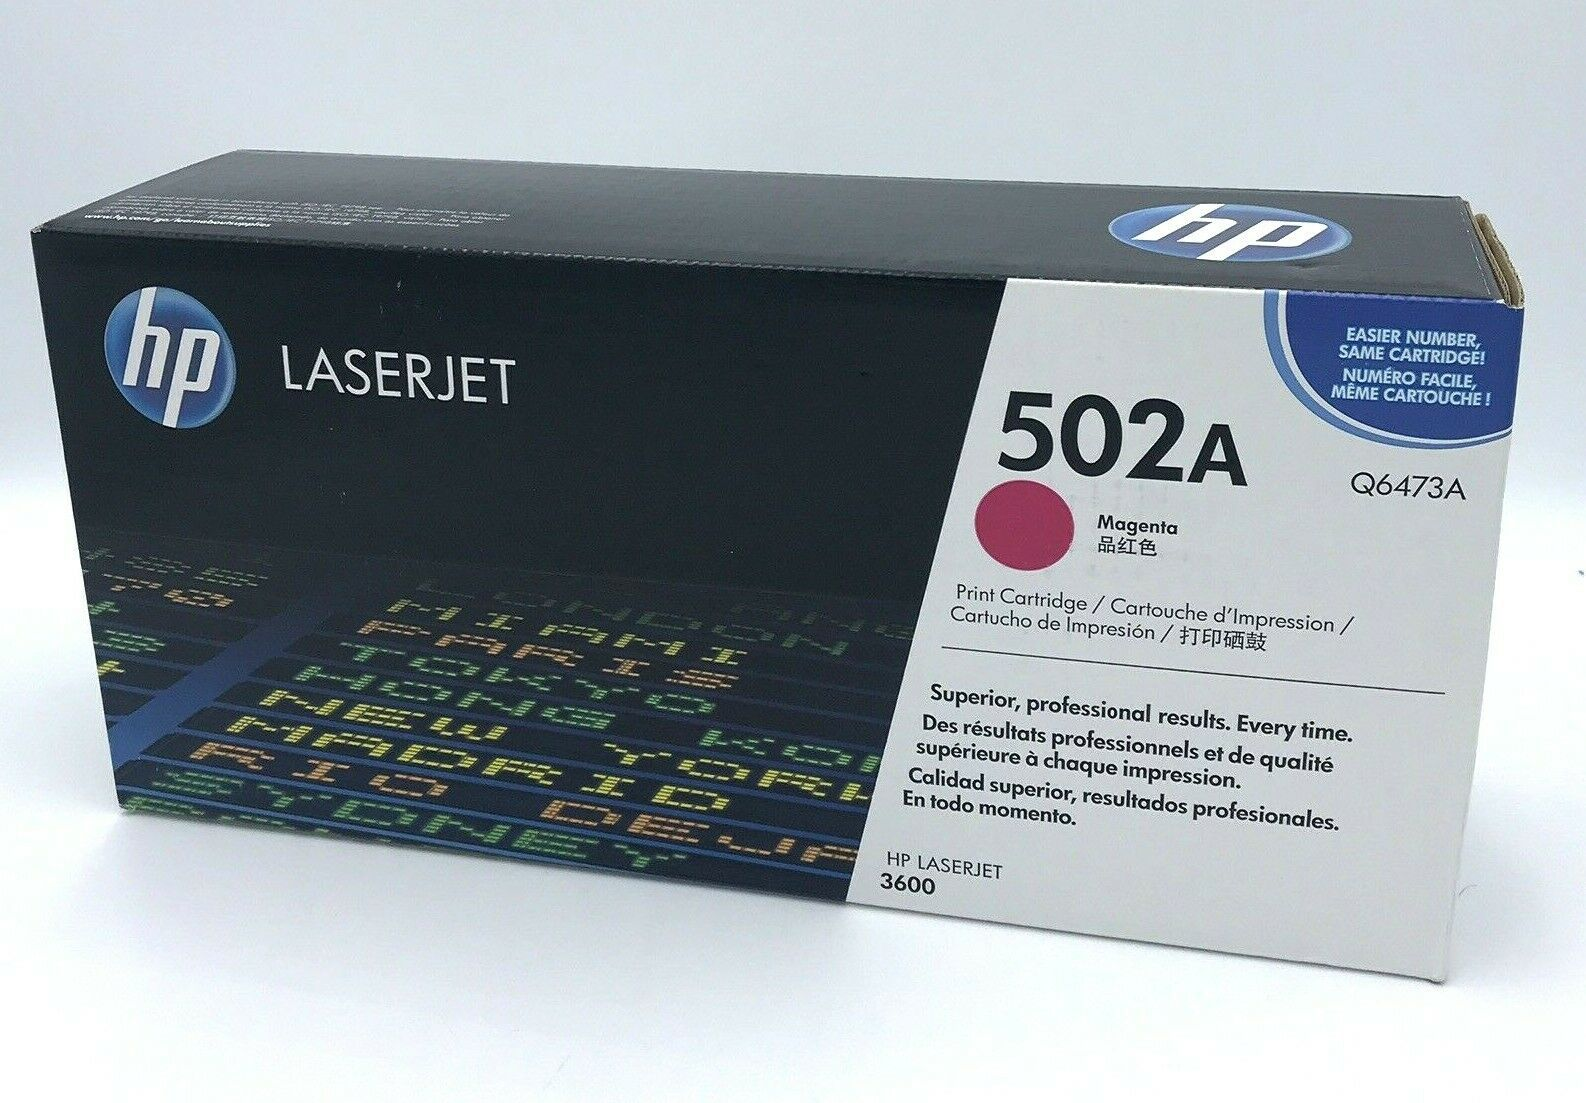 Primary image for HP Laserjet 502A Magenta Toner Cartridge Q6473A Sealed Genuine HP3600